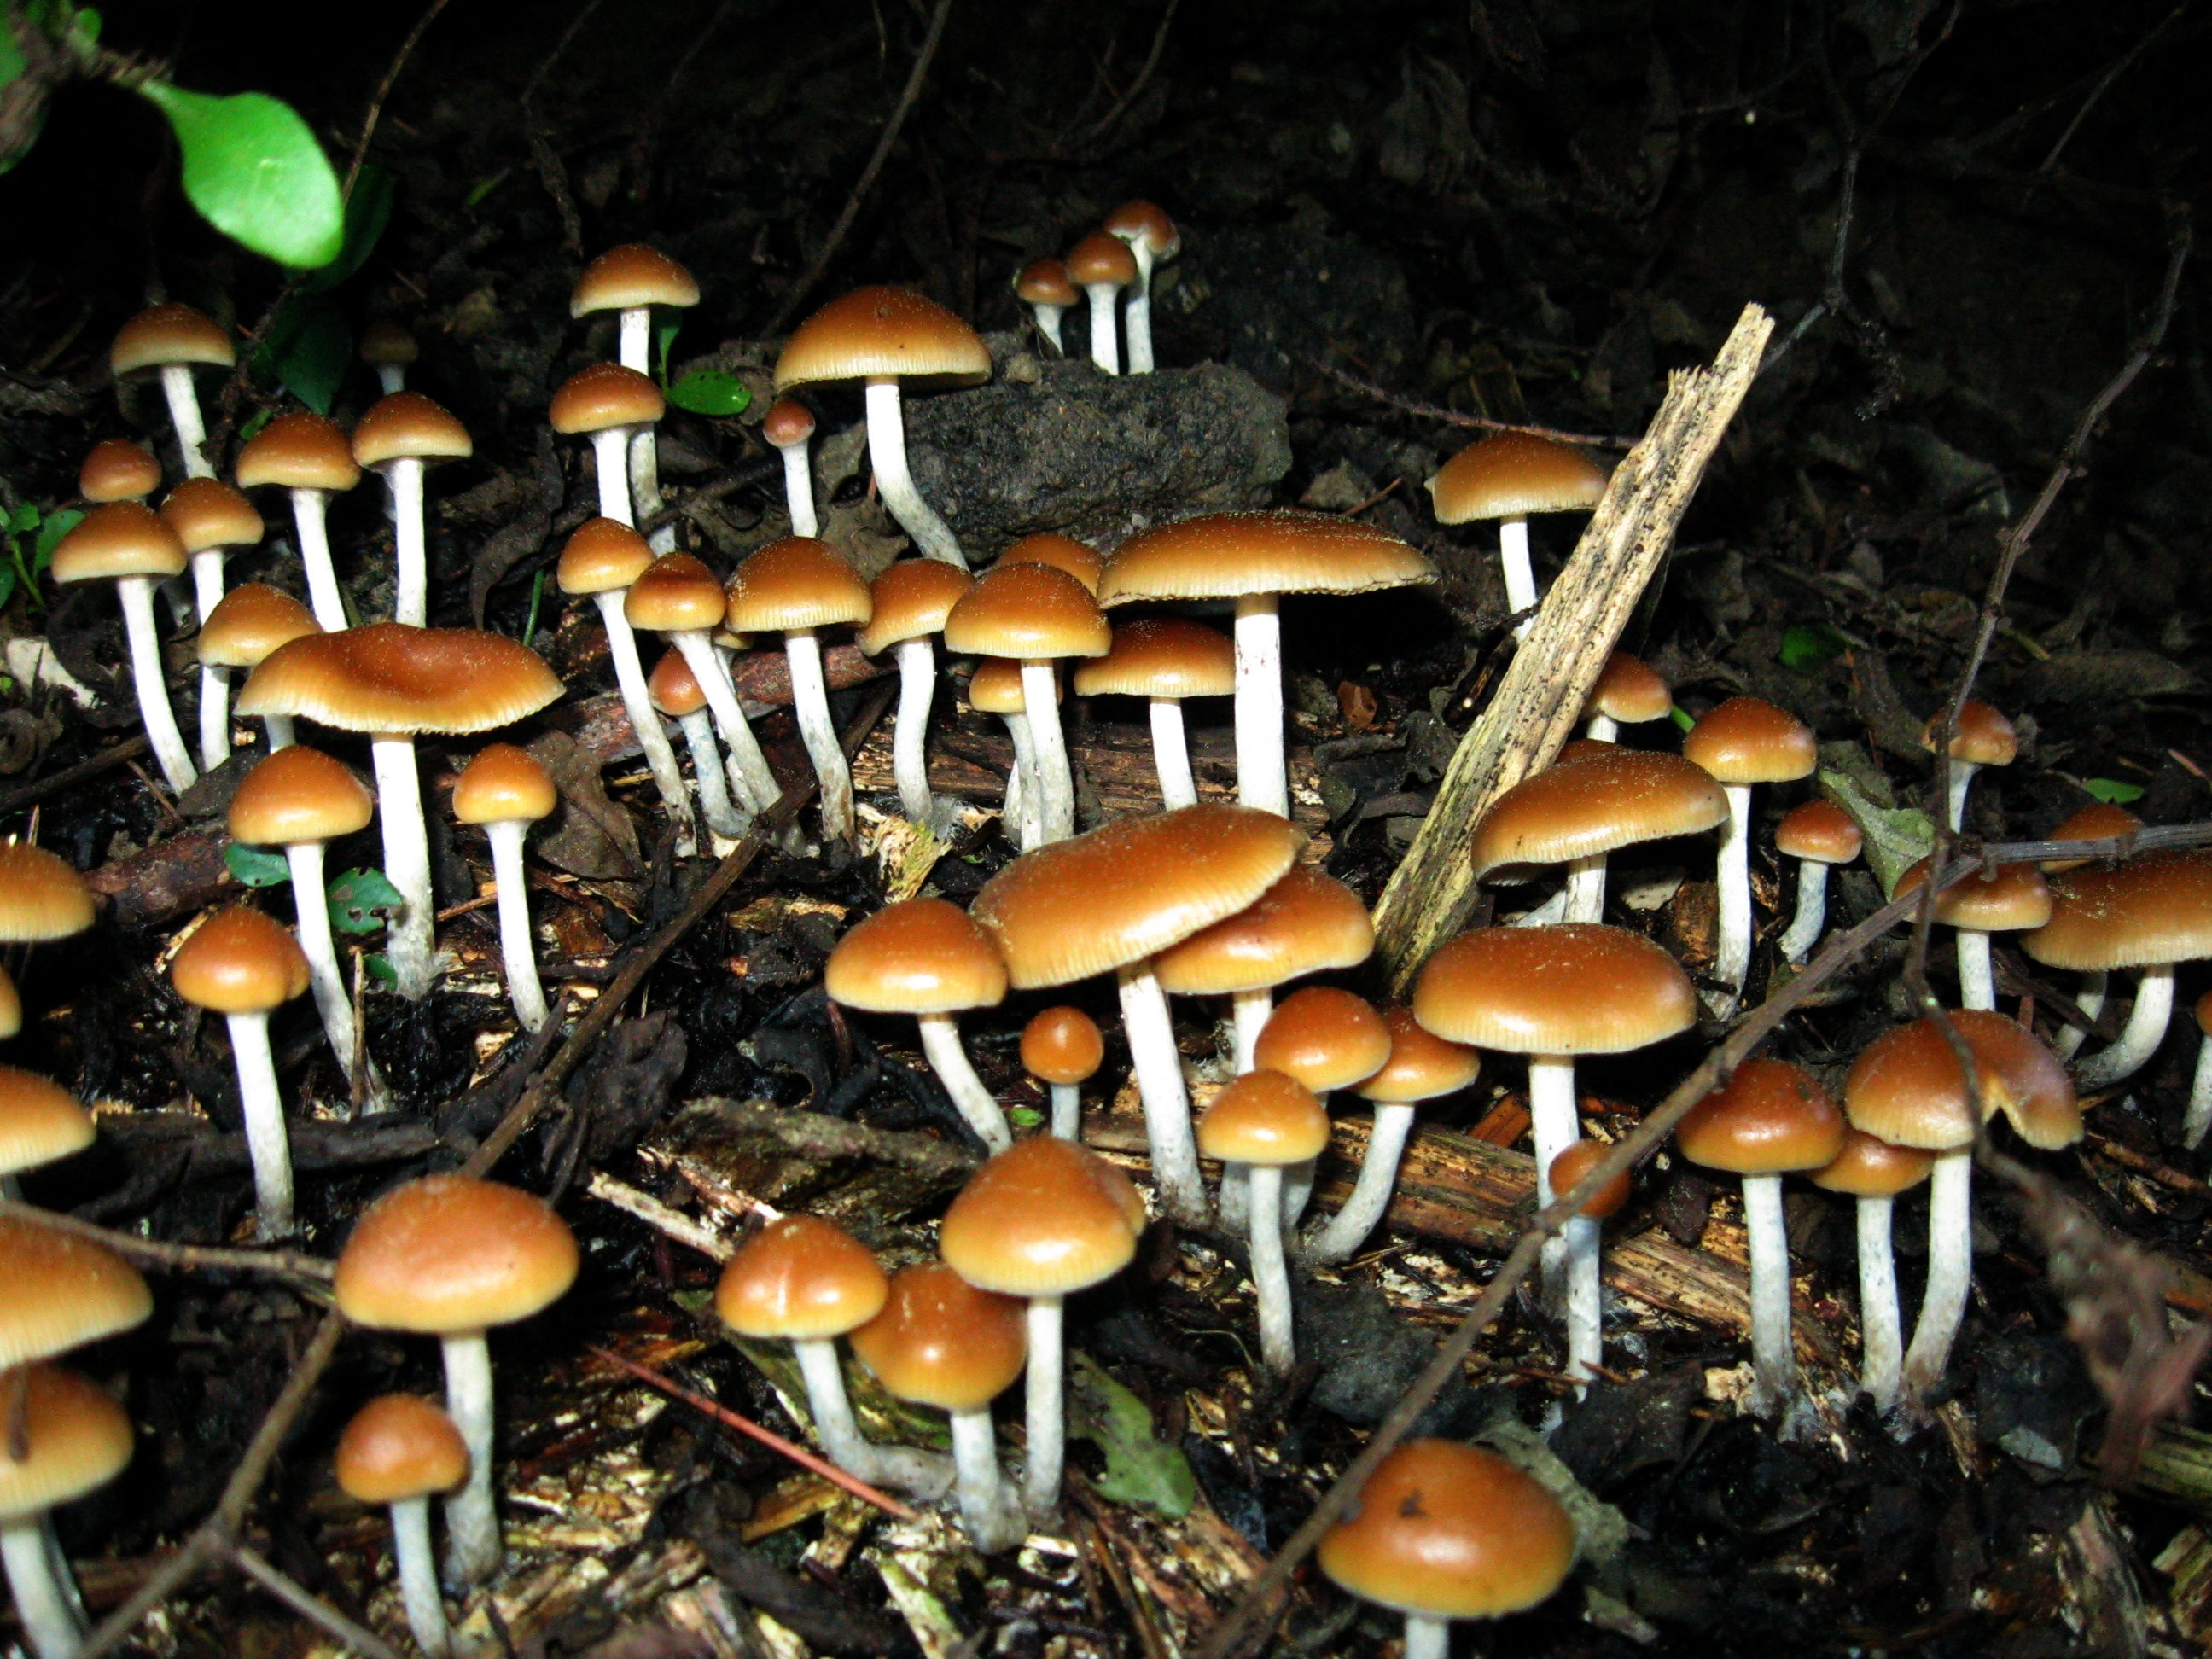 How to quit smoking: Magic mushrooms may help